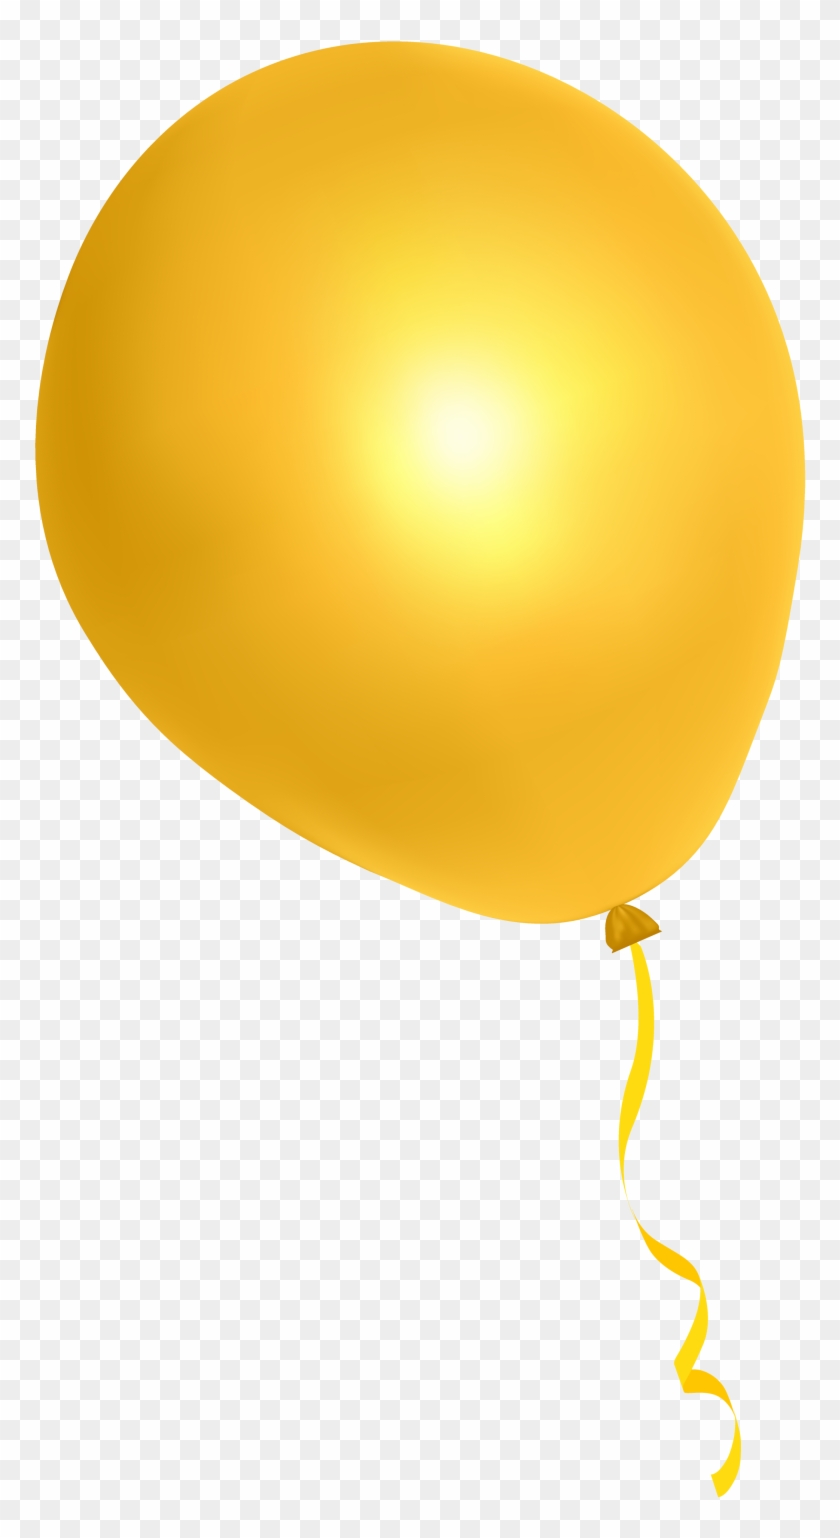 Balloon Free Png Transparent Background Images Free - Yellow Balloon Png #601506